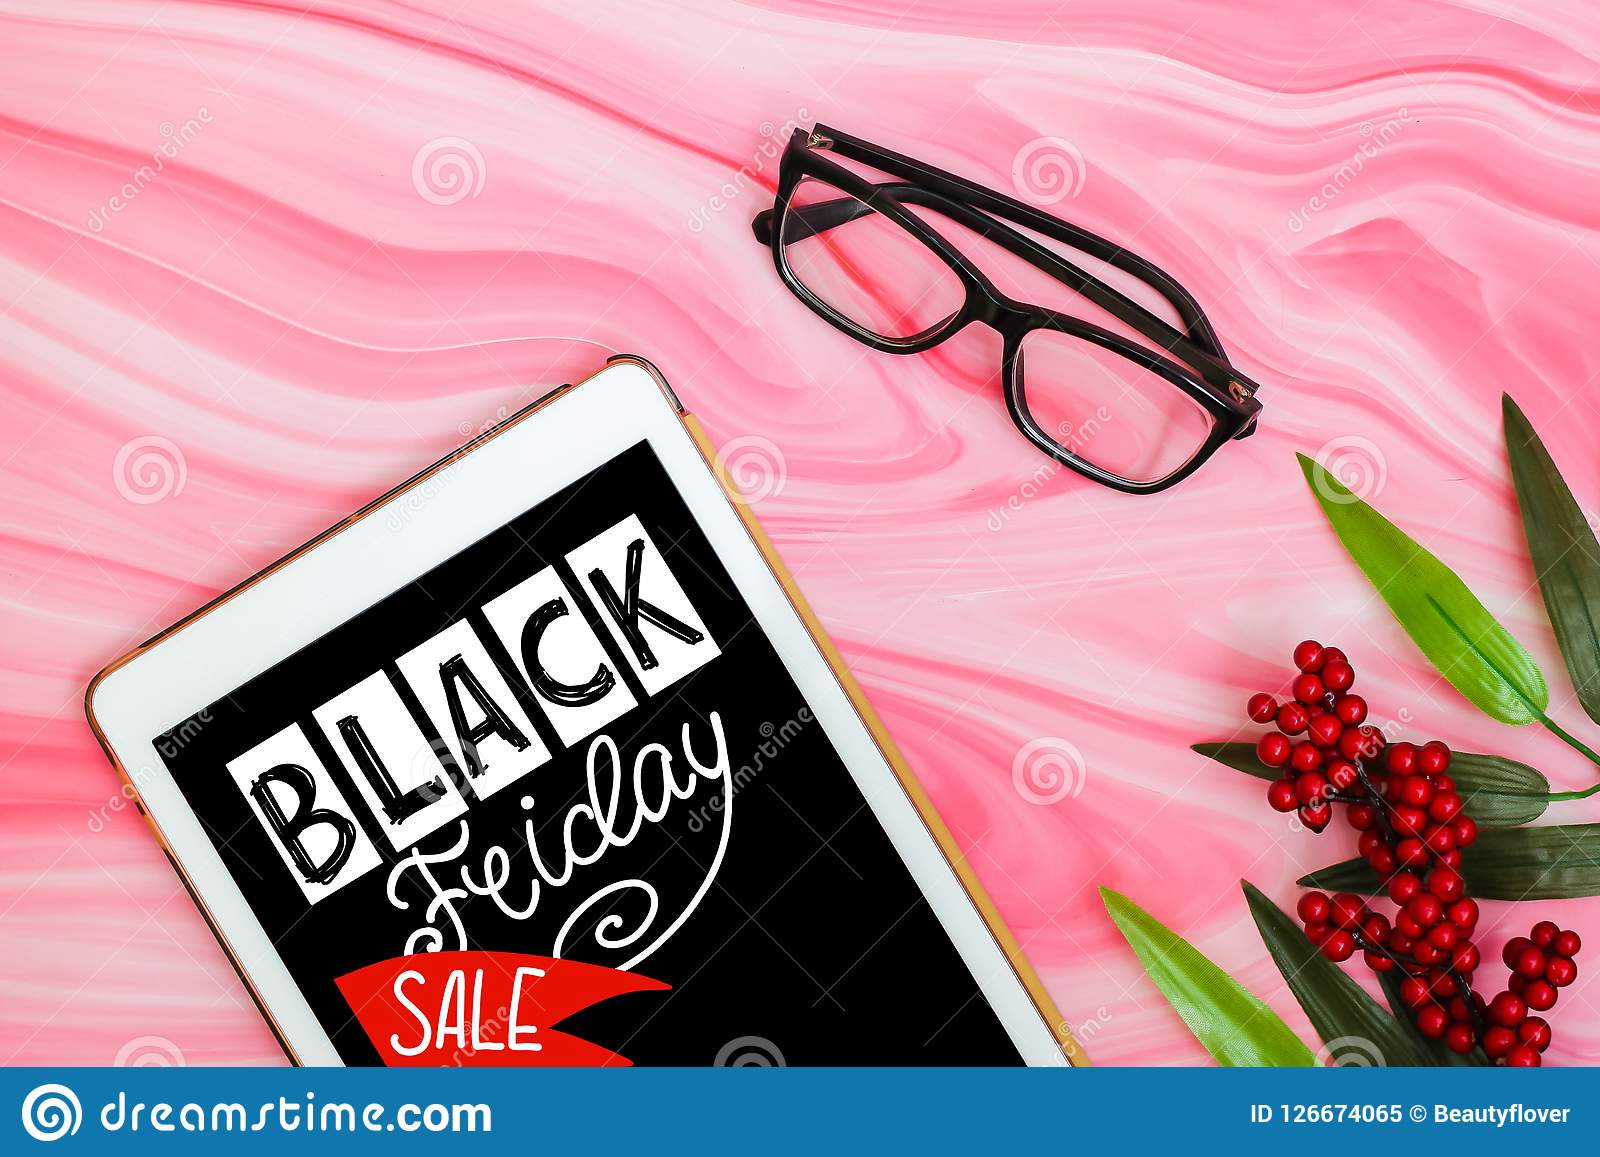 Black Friday Sale Minimal Flat Lay With Tablet Plants And Glasses On Pink Marble Background Top View Stock Image Image Of Object Office 126674065